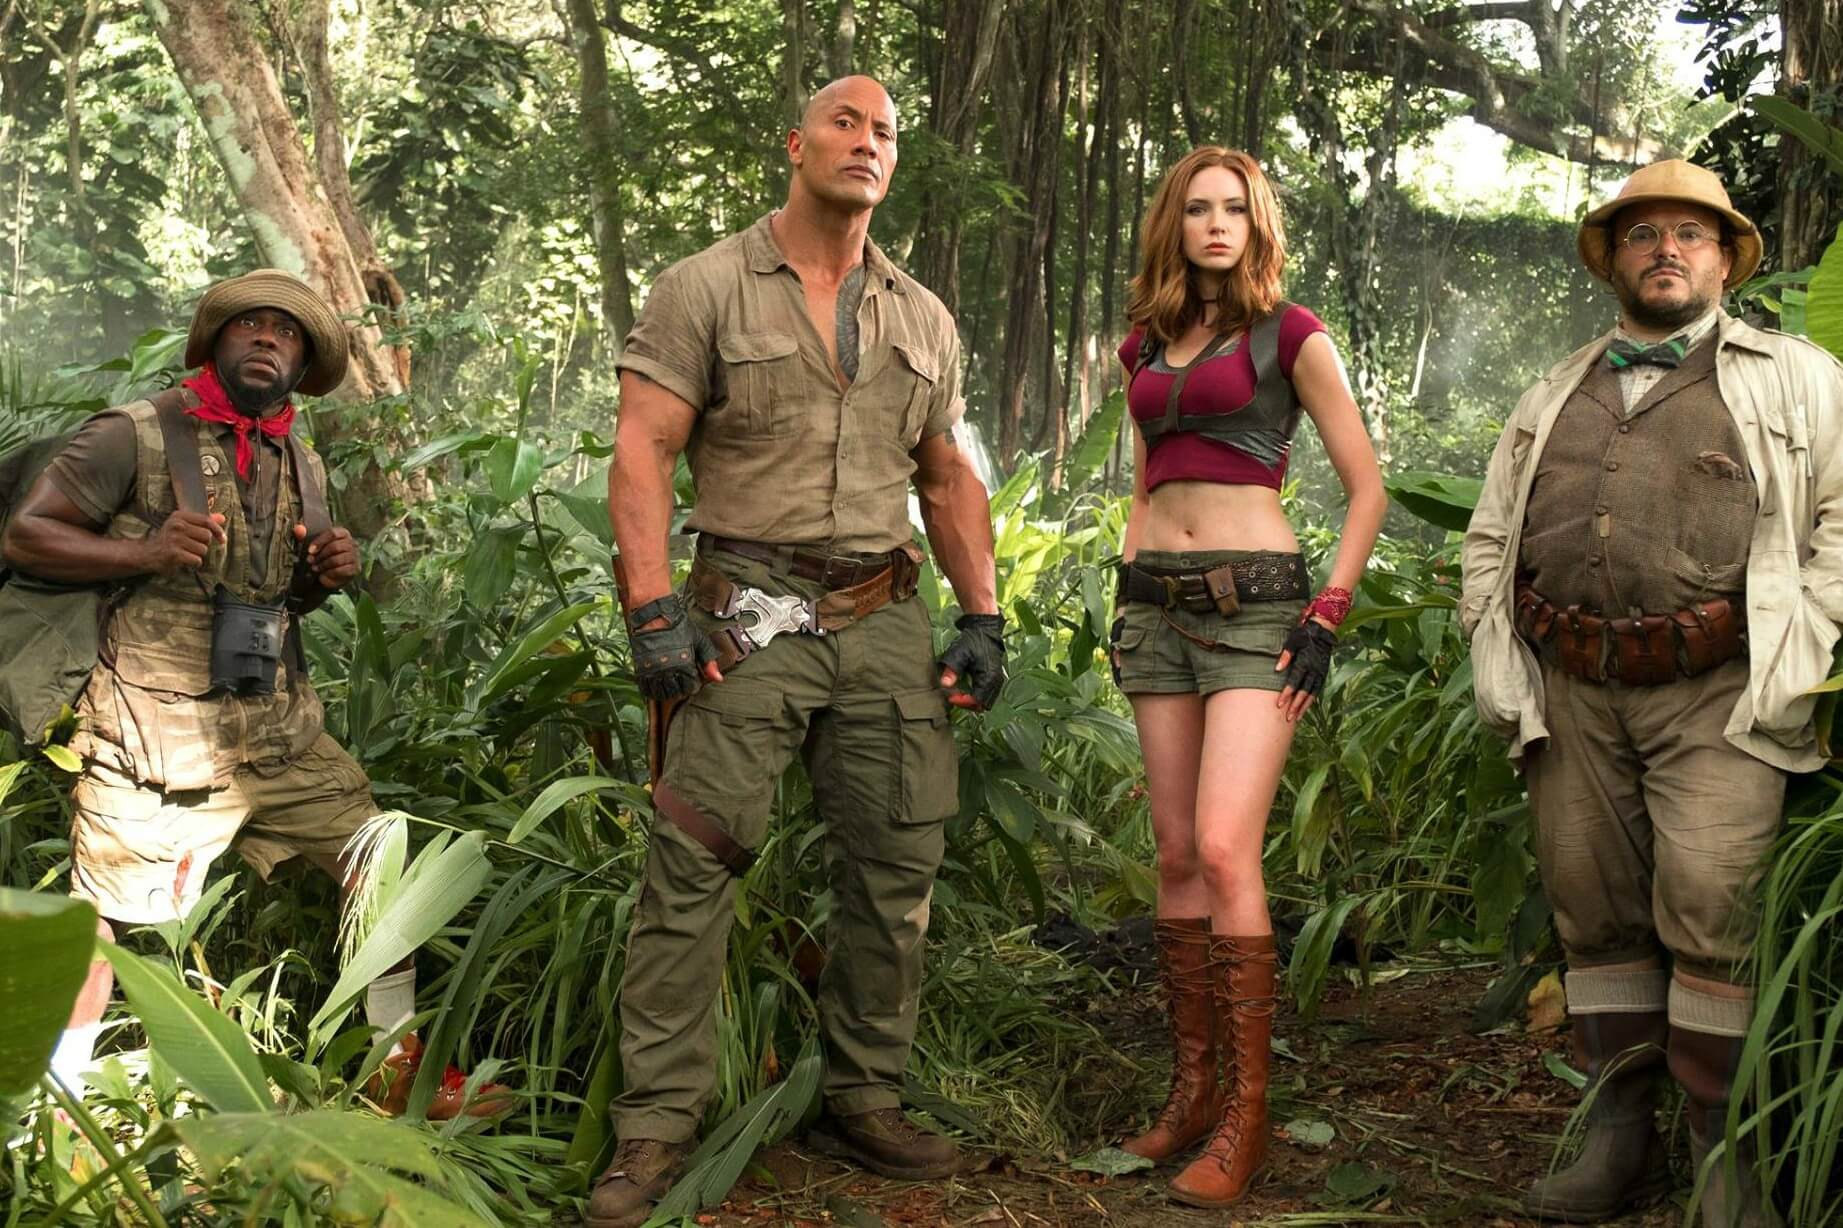 https://www.facebook.com/JumanjiMovie/photos/a.807516639402885/1056824701138743/?type=3&theater